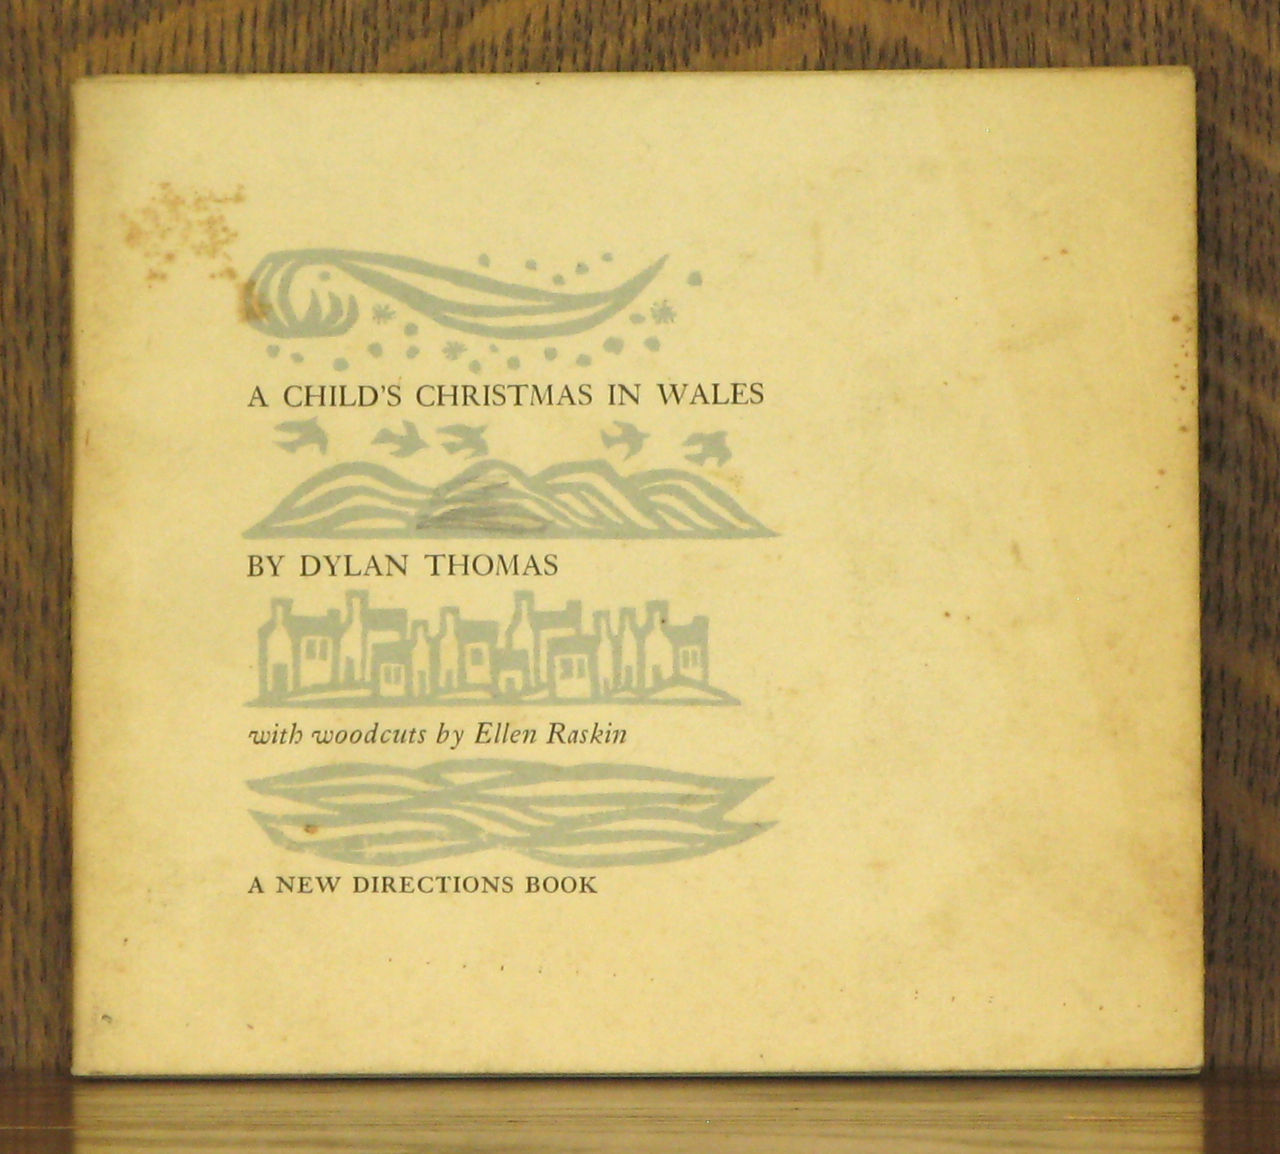 A Childs Christmas In Wales.A Child S Christmas In Wales By Woodcuts By Ellen Raskin Dylan Thomas Paperback Fourth Printing 1959 From Andre Strong Bookseller And